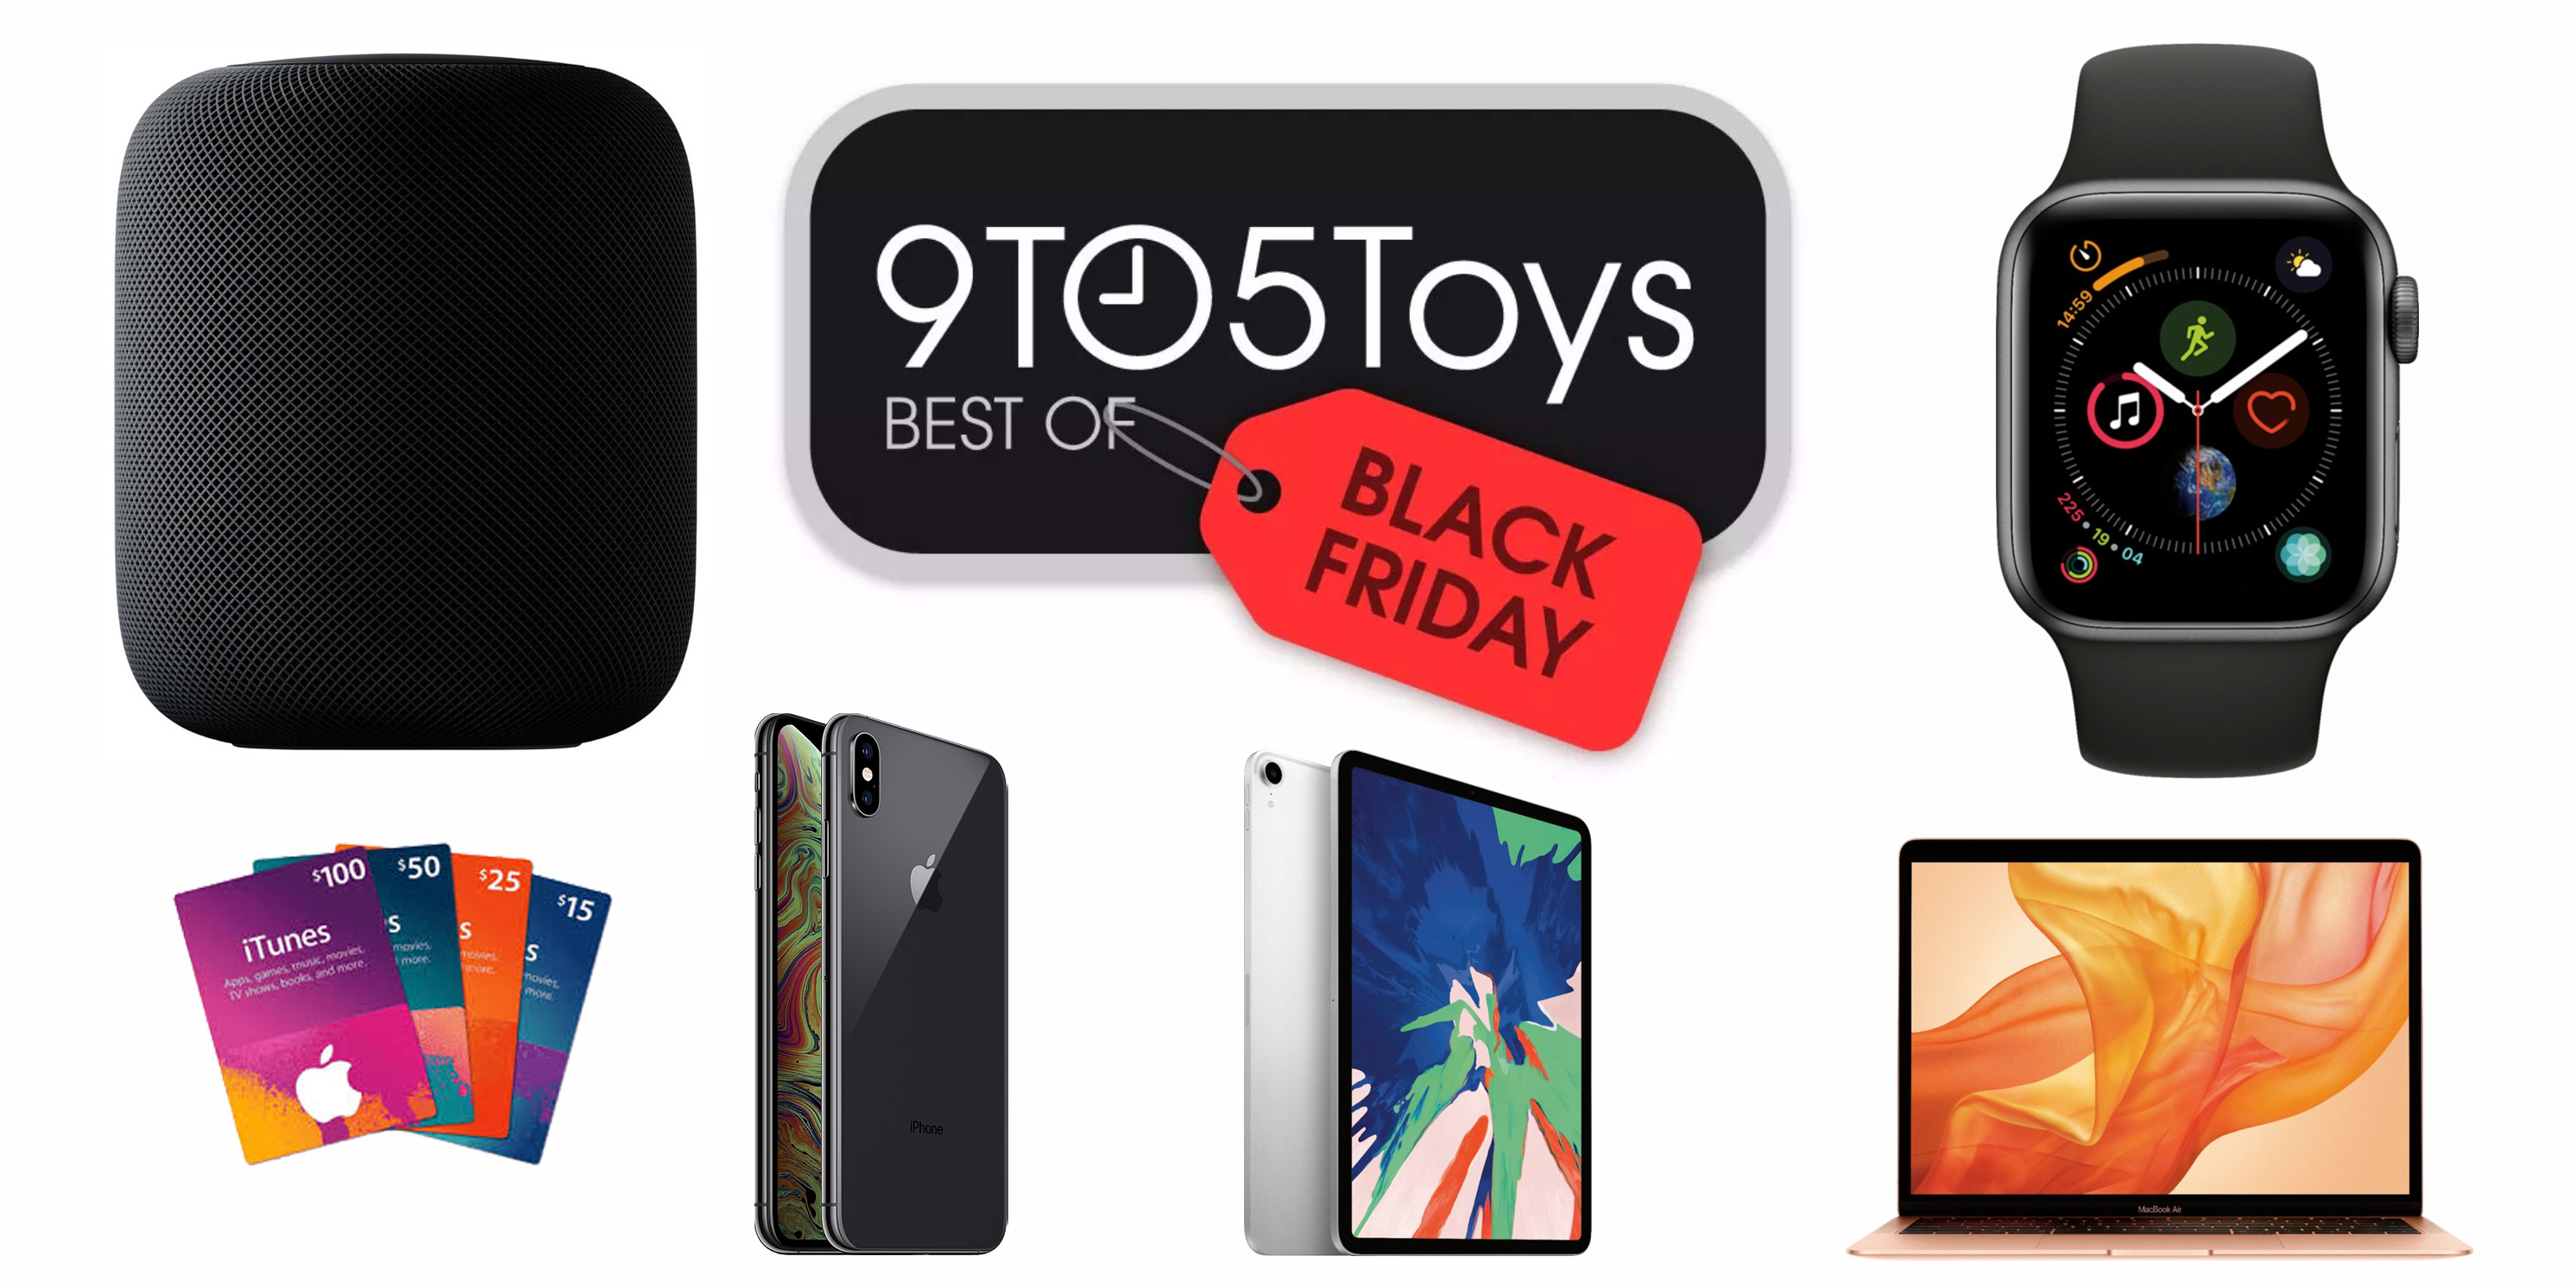 Best of Black Friday 2018 – Apple: HomePod $250, $400 gift card w/ iPhone, MacBooks, iPad, more